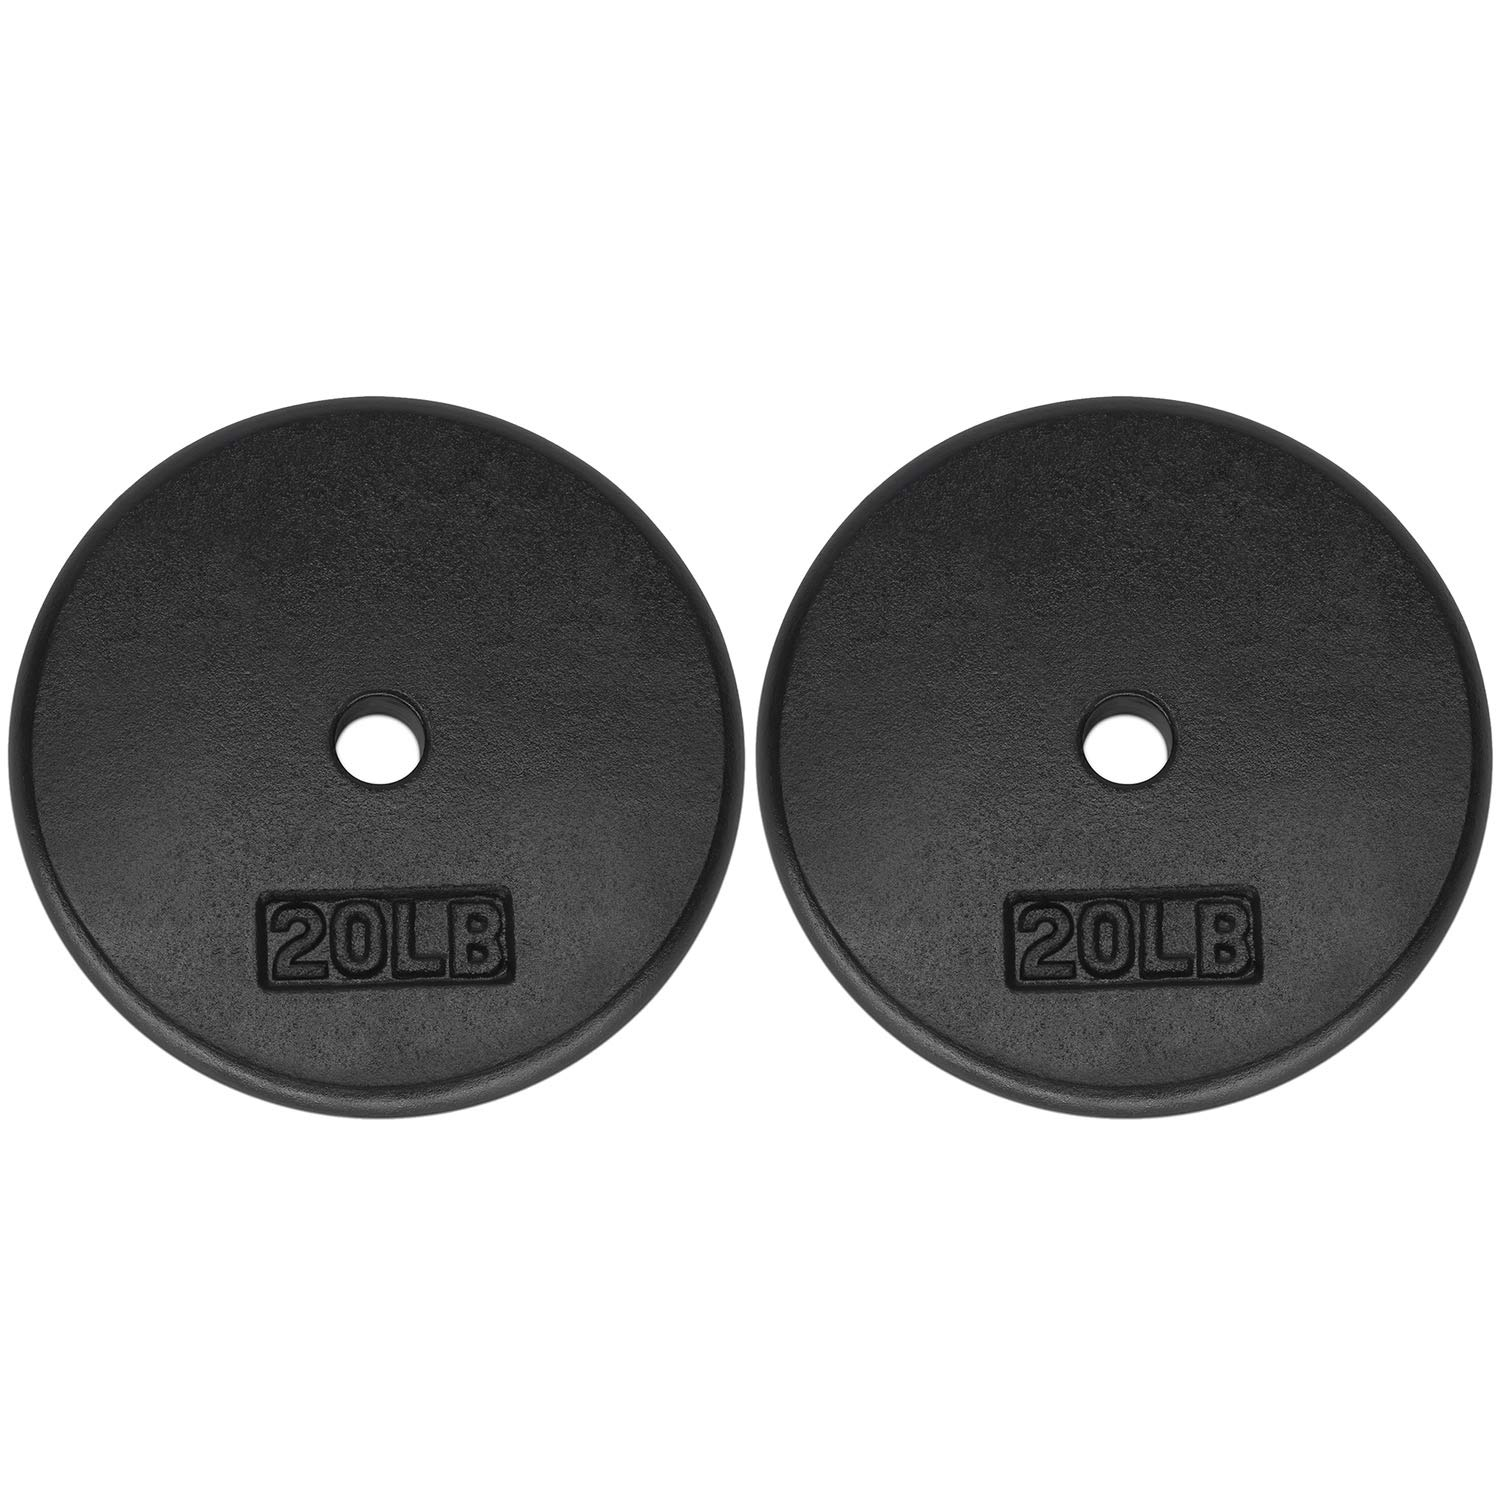 Yes4All 1-inch Cast Iron Weight Plates for Dumbbells – Standard Weight Plates (20 lbs, Pair)